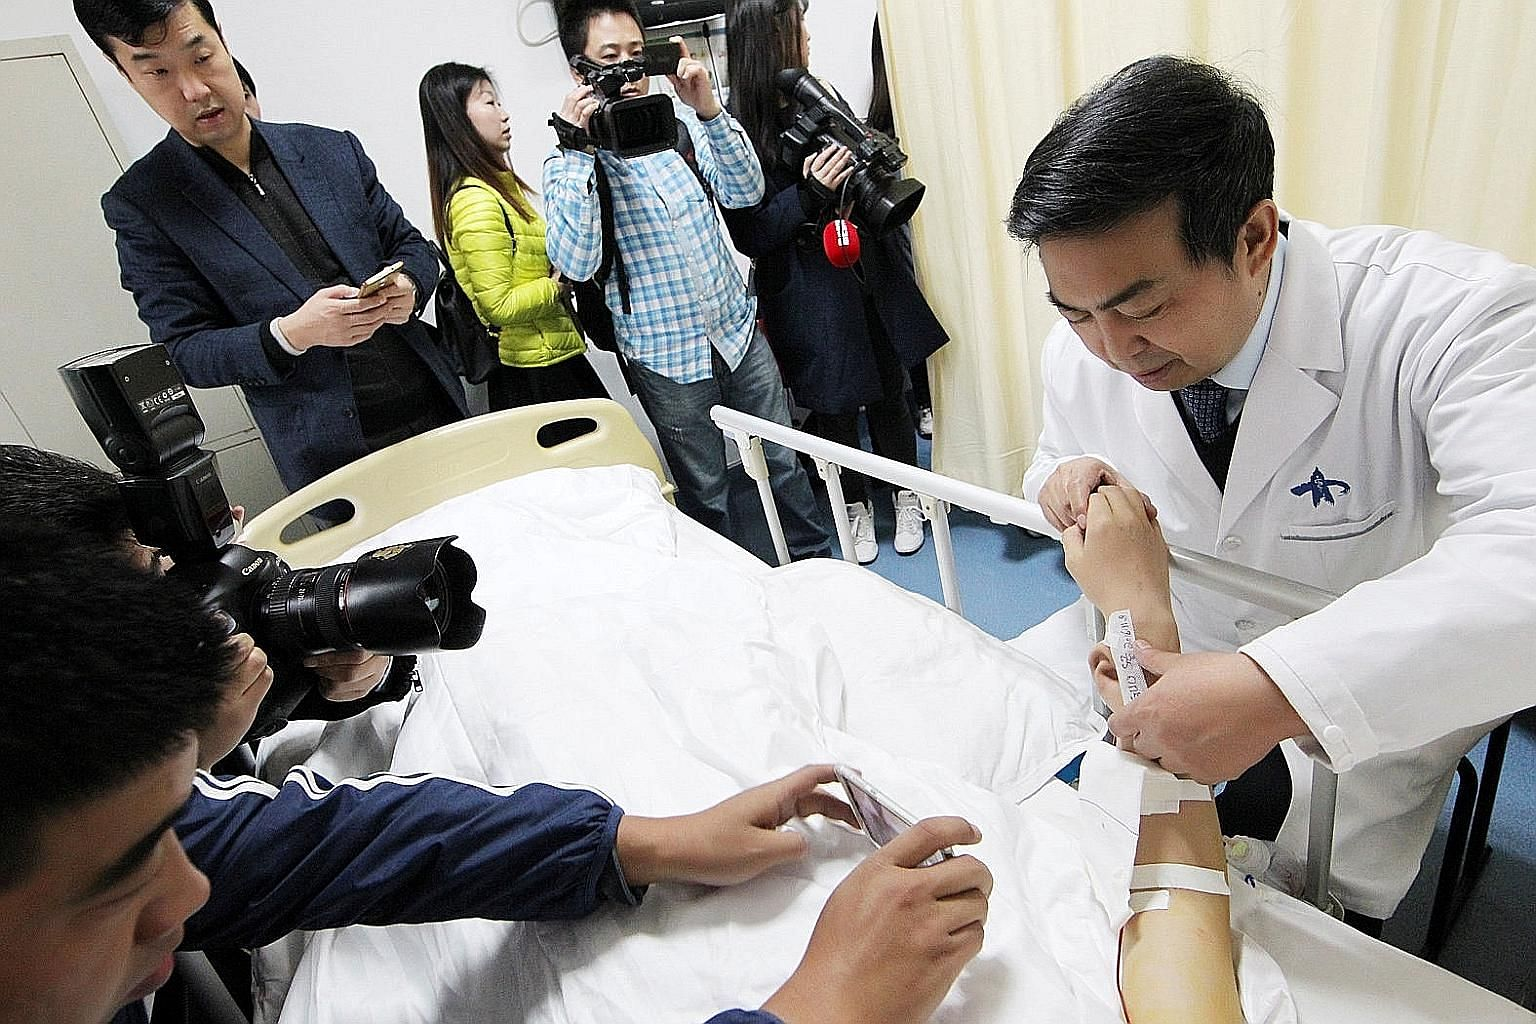 """Reporters (left) snapping photos of the """"ear"""" (below) growing on the arm of a man in China who lost his right ear in an accident."""